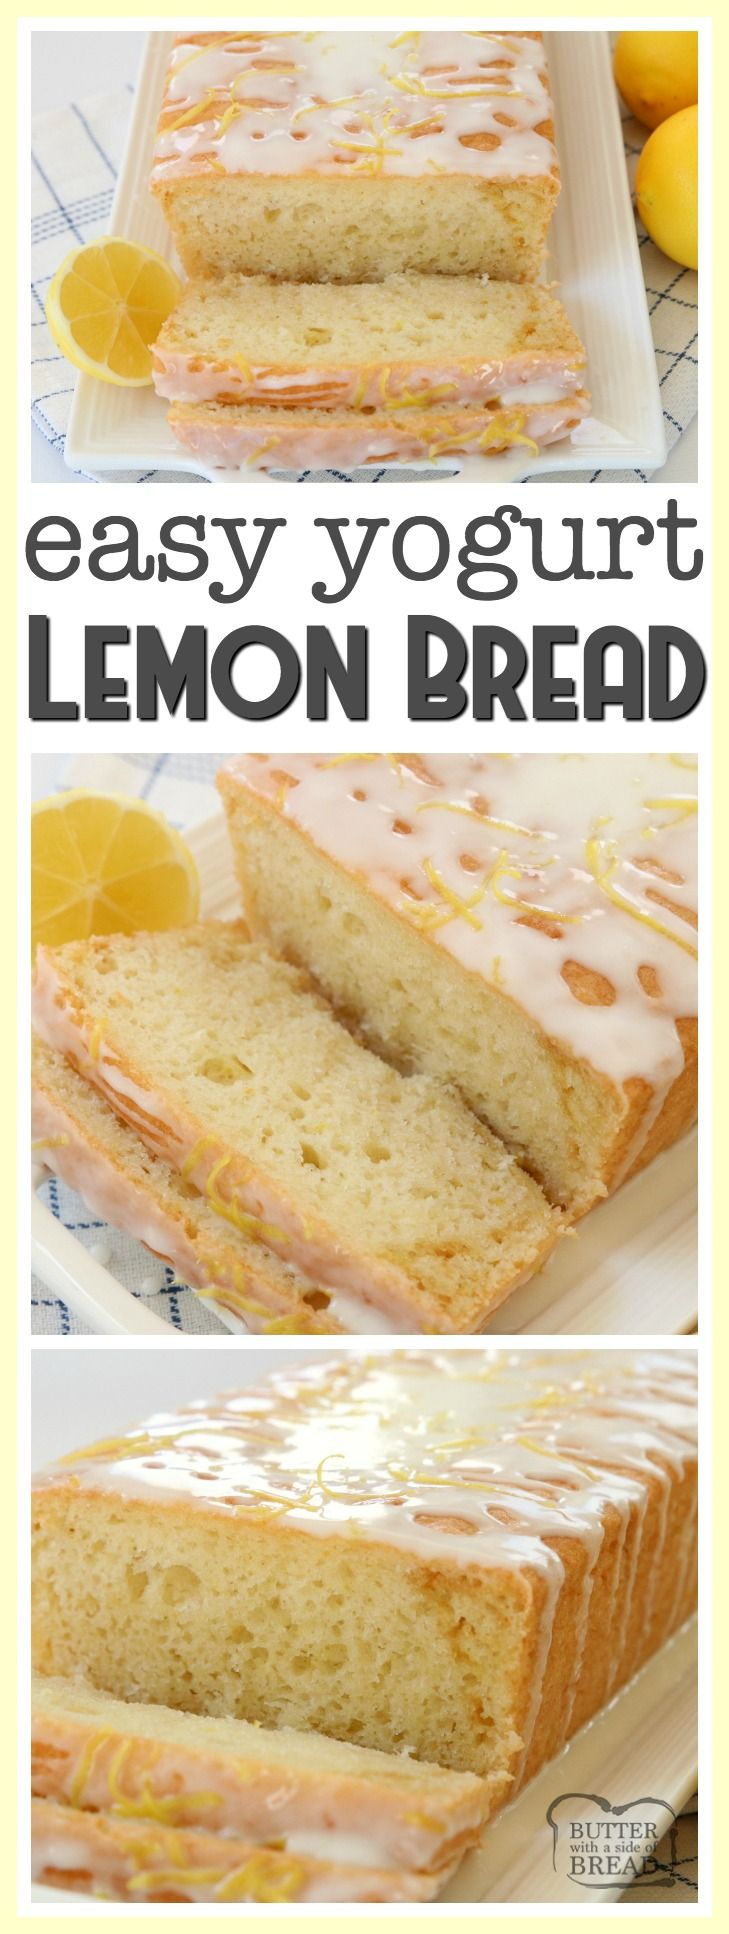 Yogurt Lemon Bread is made with tangy lemon yogurt & topped with a sweet lemon glaze. Incredible flavor and perfectly light & moist lemon bread recipe. The addition of yogurt to this lemon bread recipe is such a great idea as it keeps the bread moist and adds a nice delicate texture. Easy #Lemon #Bread #recipe from Butter With A Side of Bread #baking #yogurt #quick